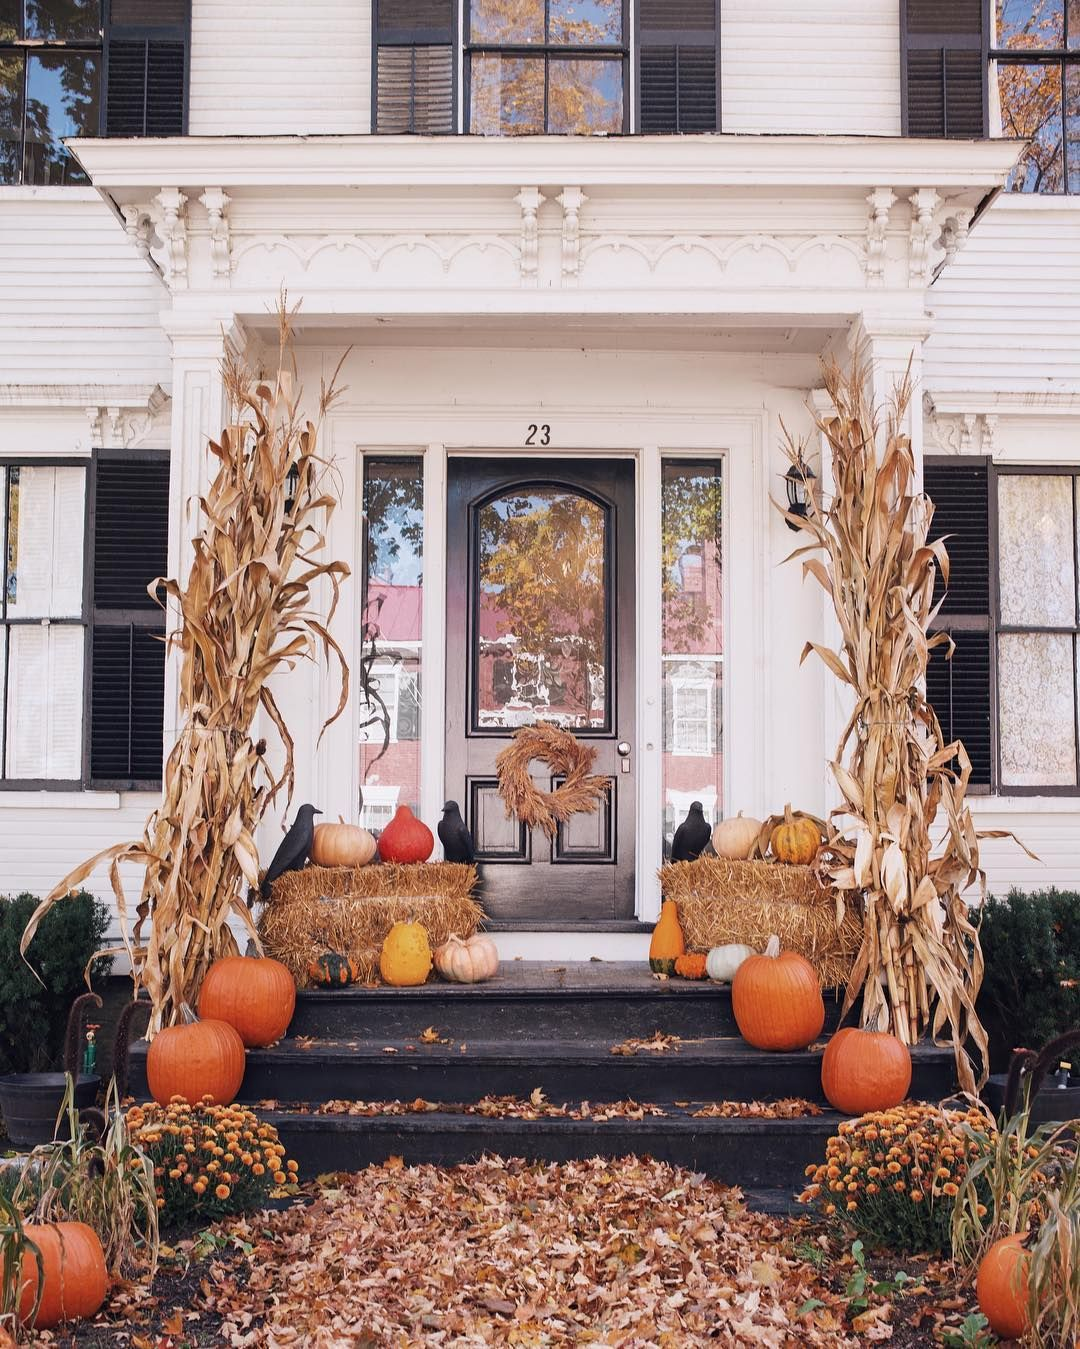 Fall Home Decorations: #woodstock • Instagram Photos And Videos